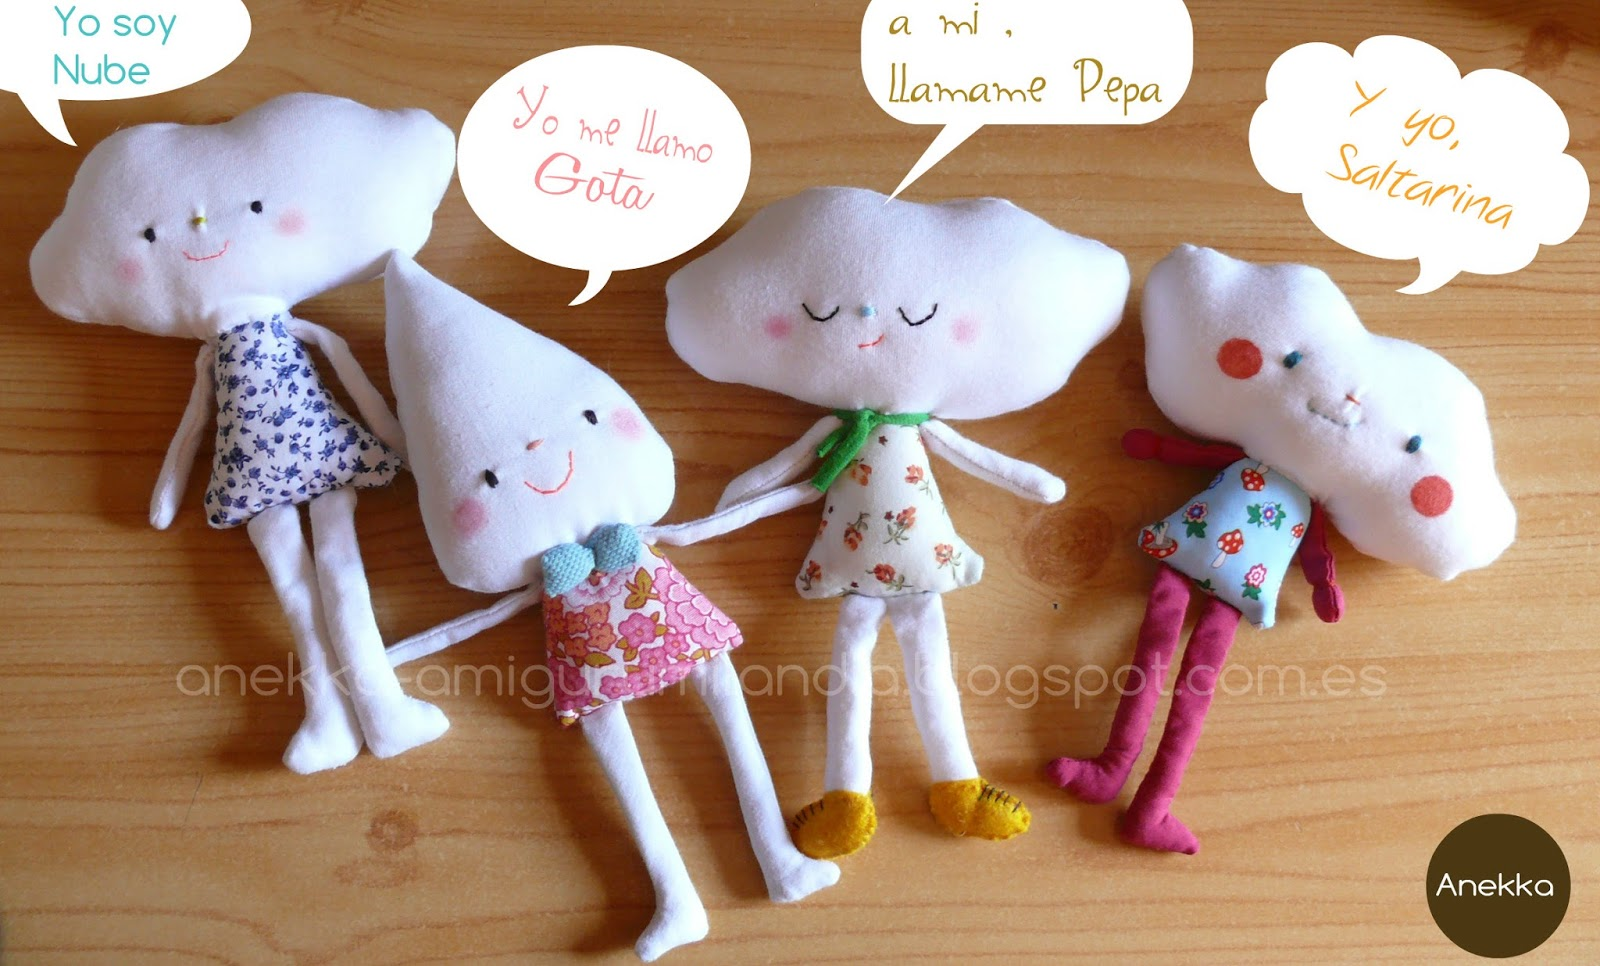 toy doll anekka handmade